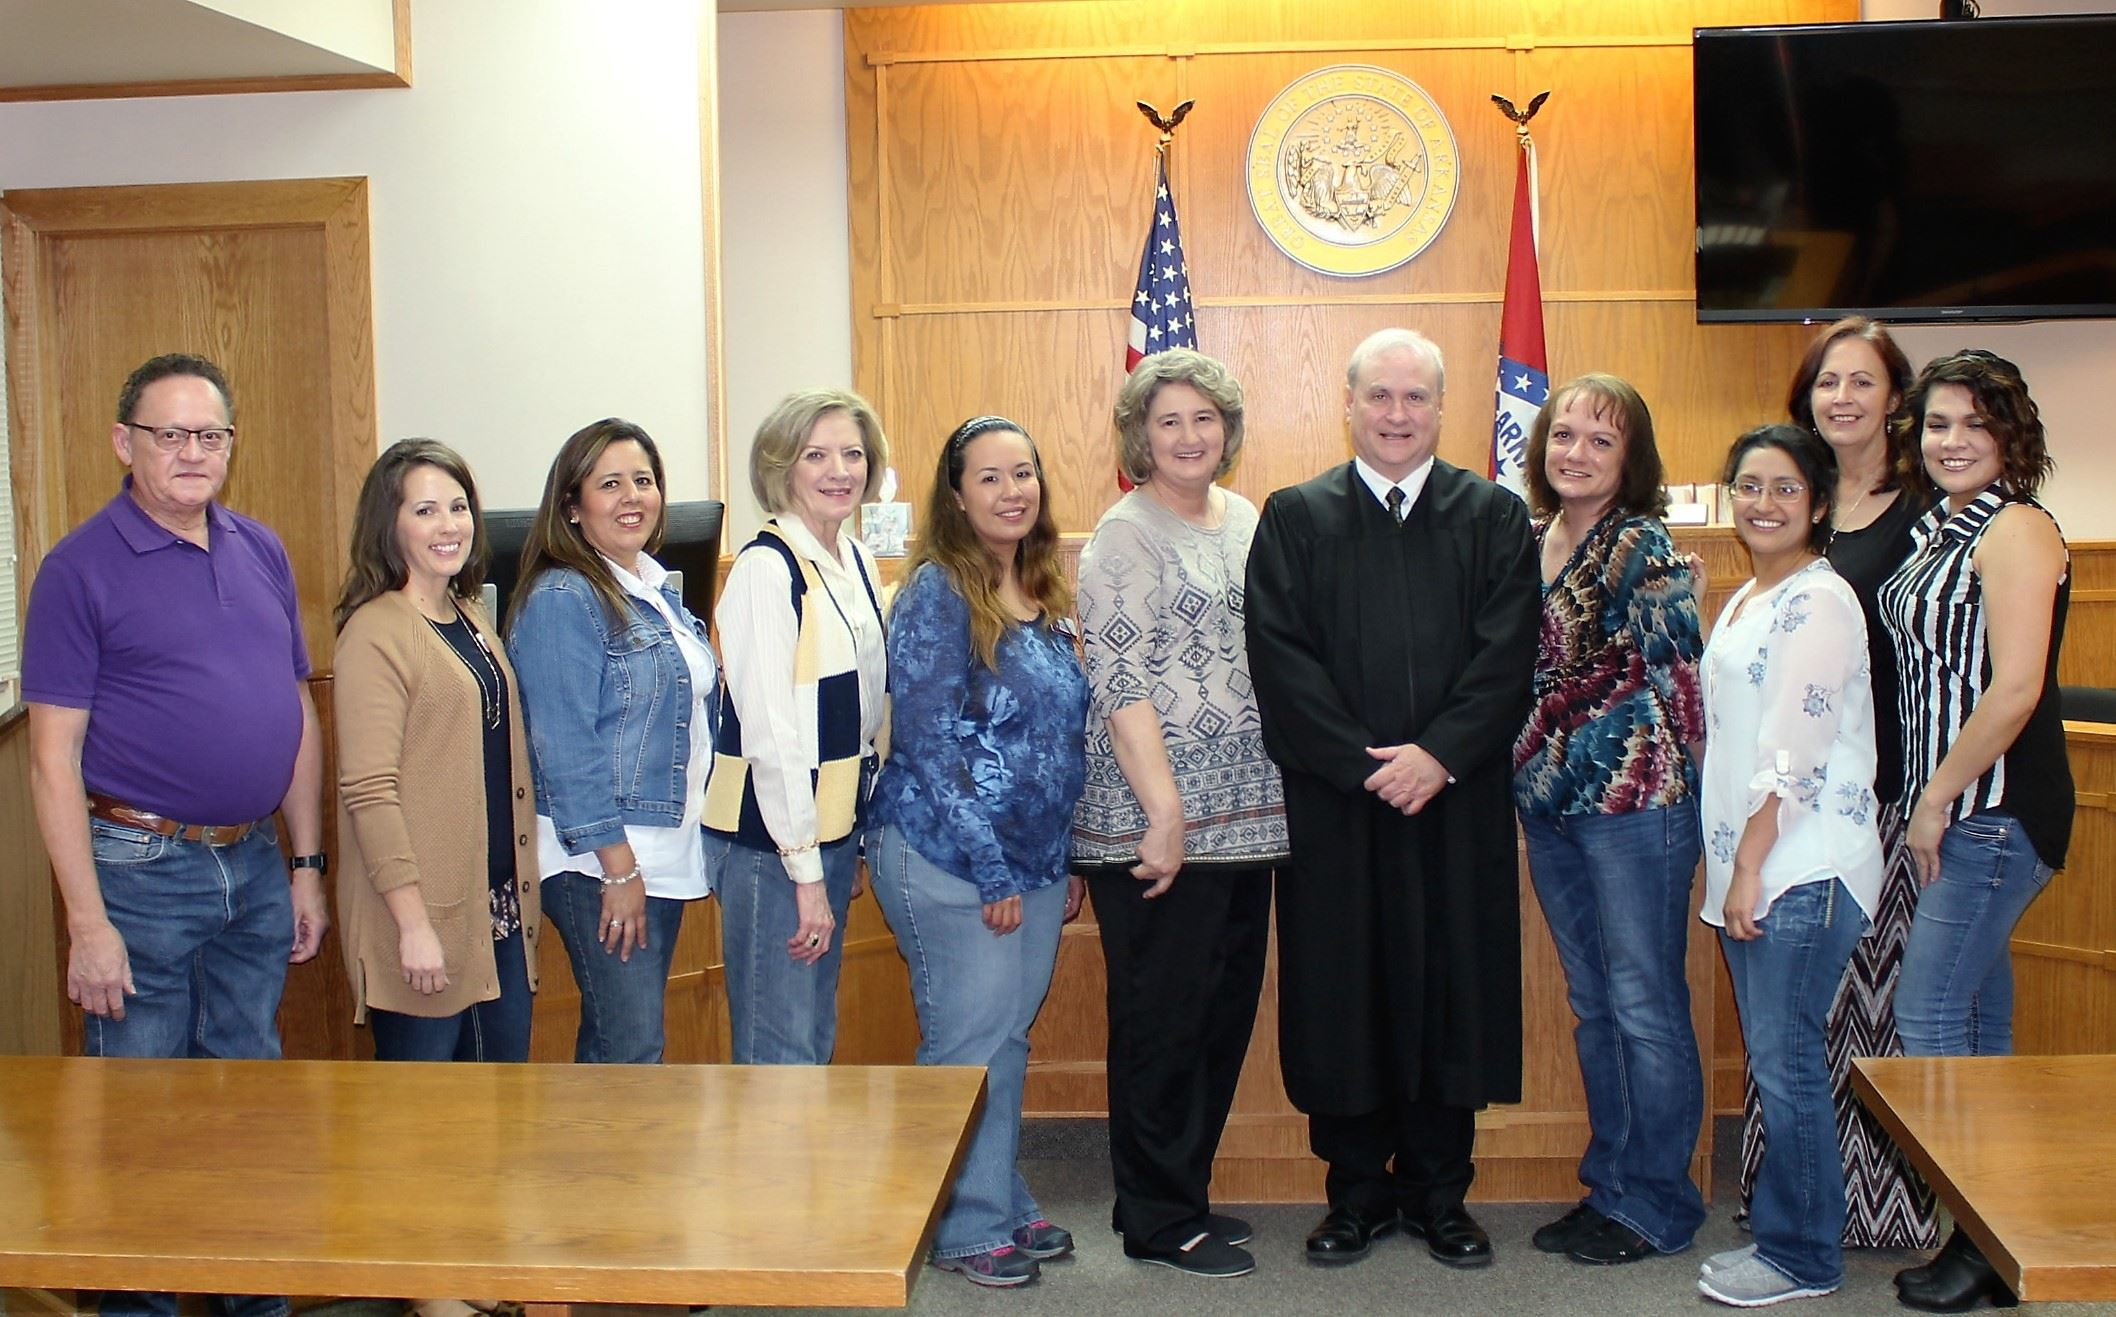 Judge Harper, Sue, Probation Officer Jerry Tedford and Deputy Court Clerks after the ceremony.